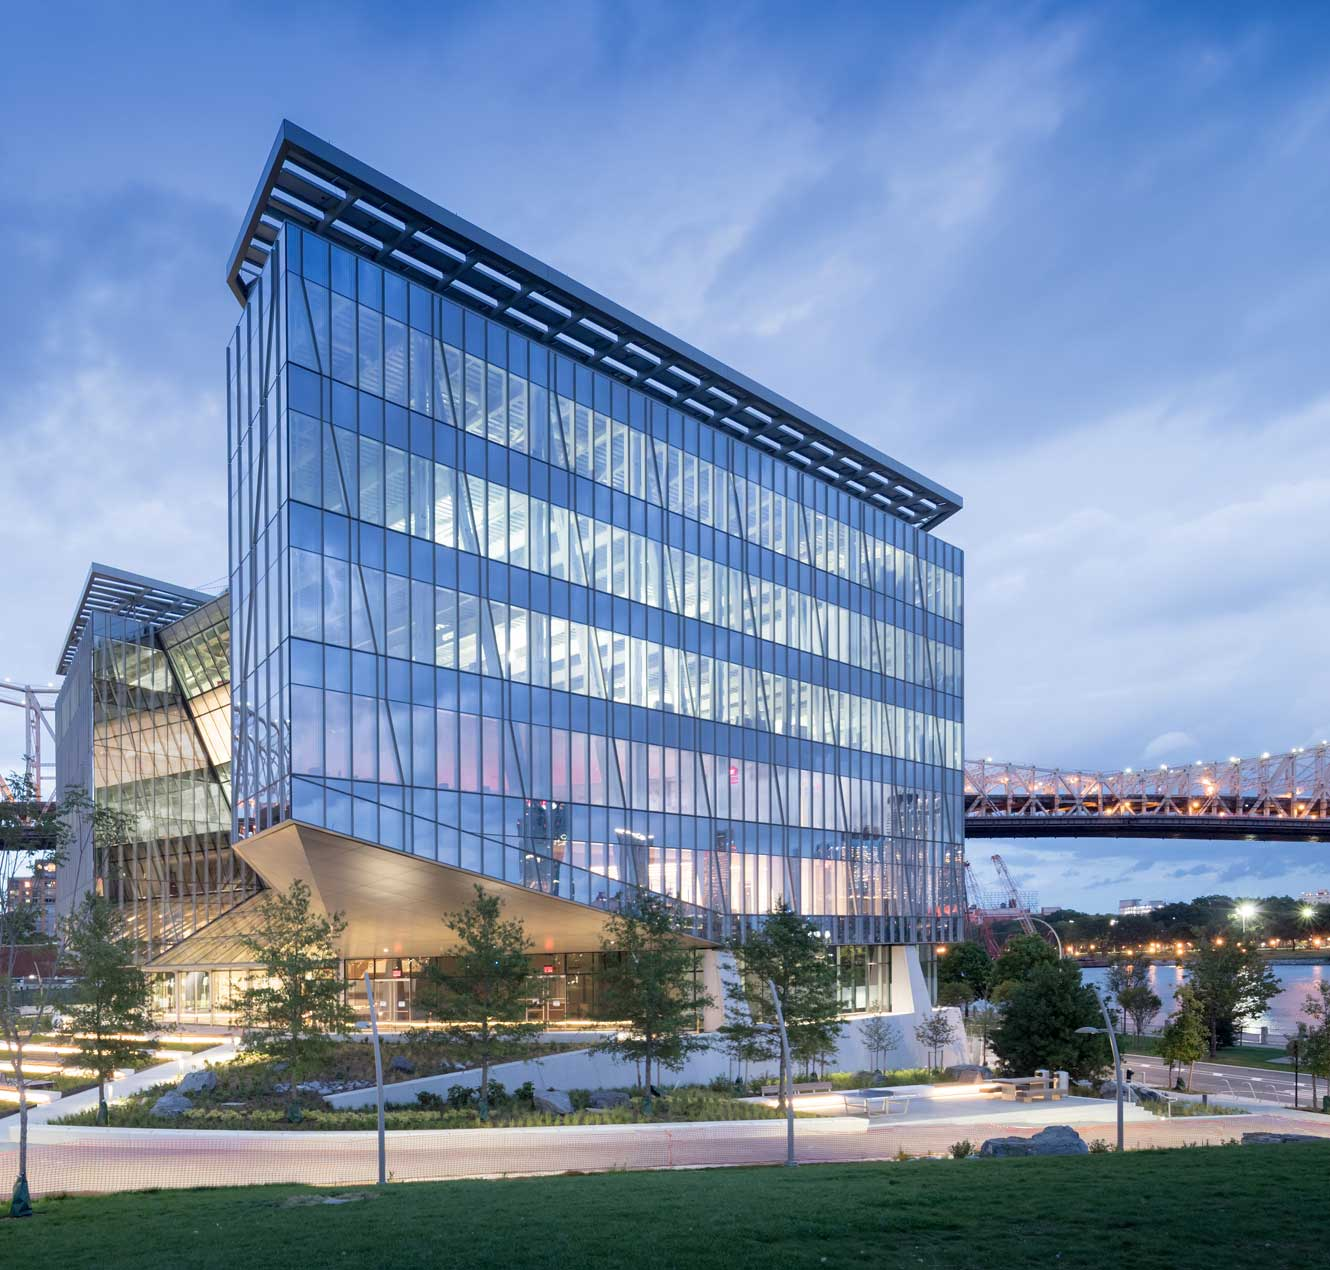 TCS and Cornell Tech Inaugurate the Tata Innovation Center, Partnership on Campus to Promote Joint Academic and Industry Research